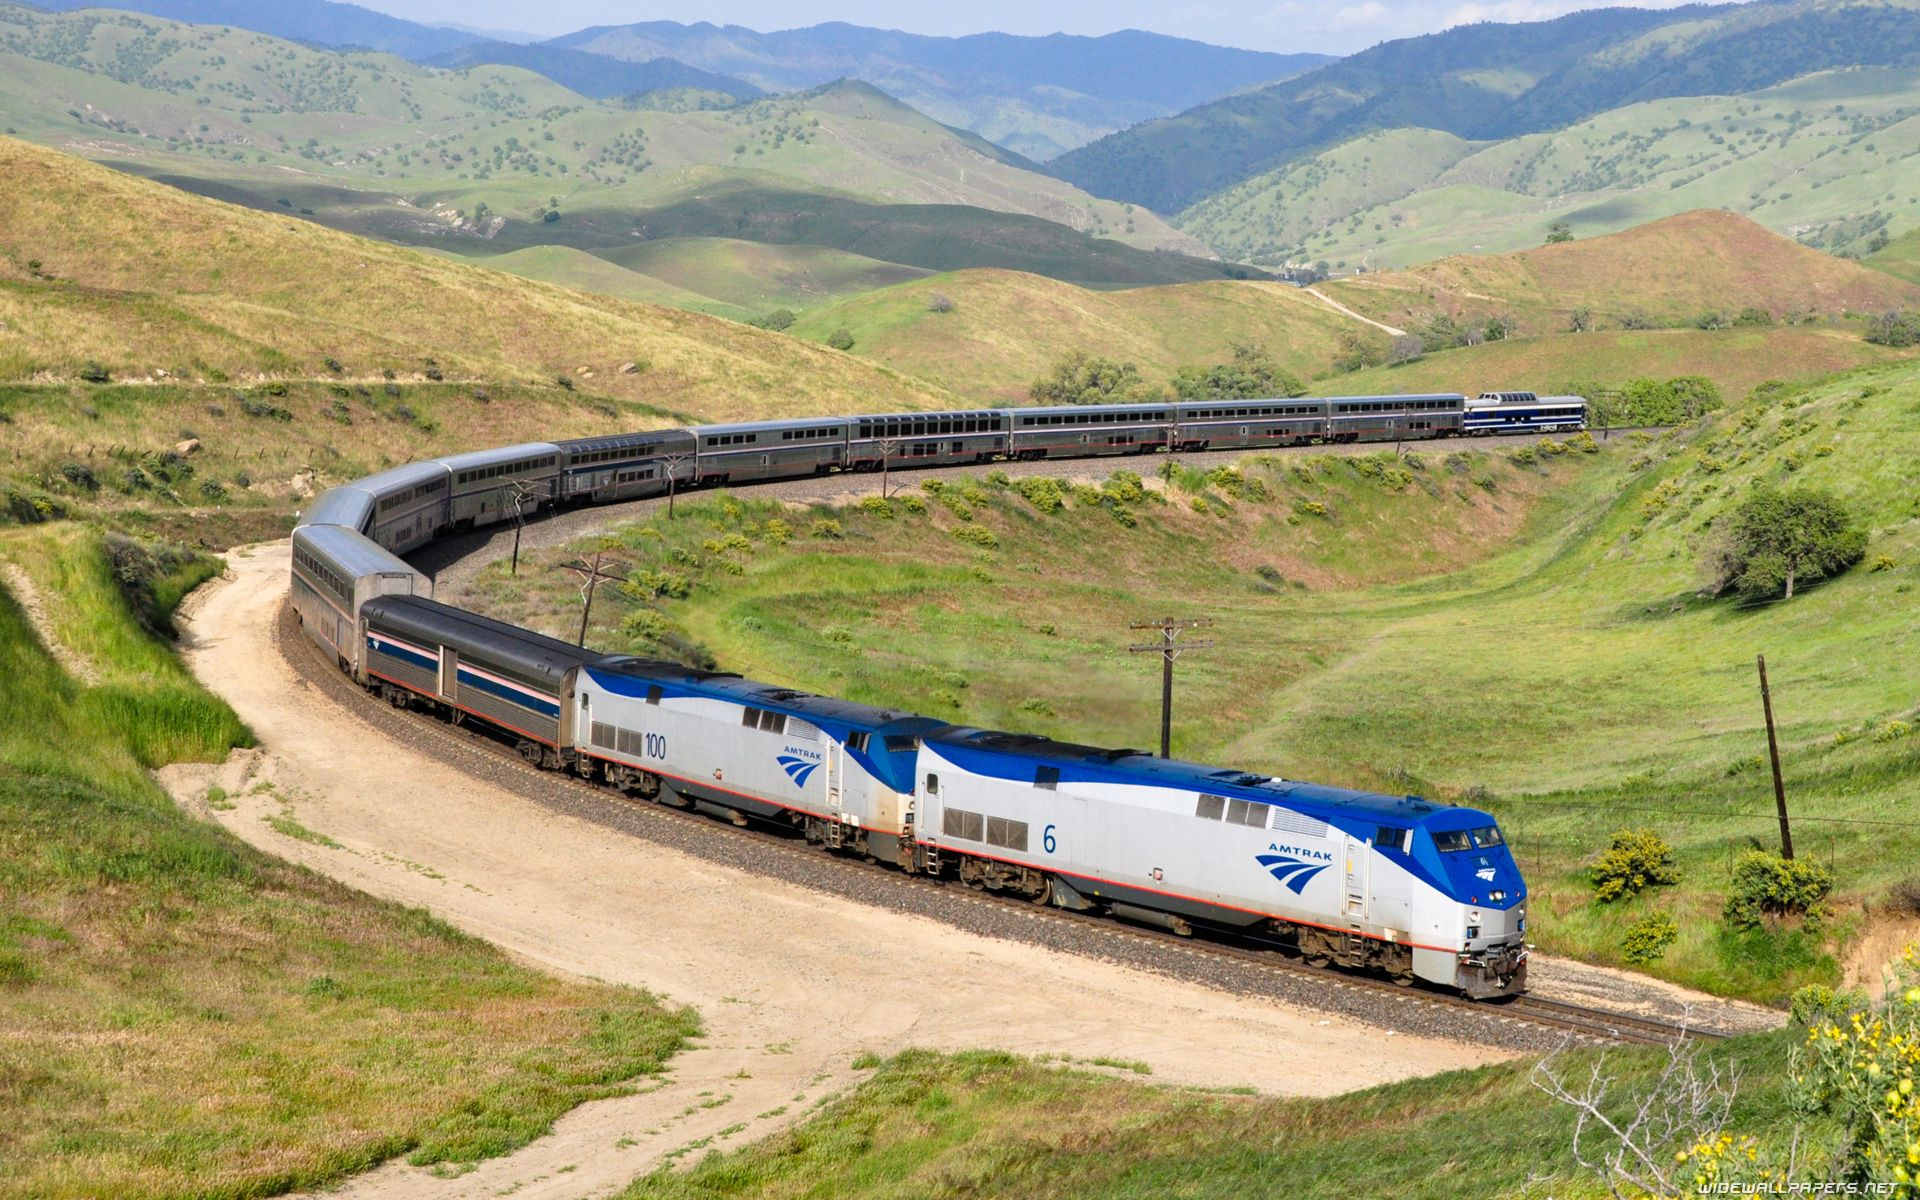 amtrak train images amtrak wallpapers train railroad Trains